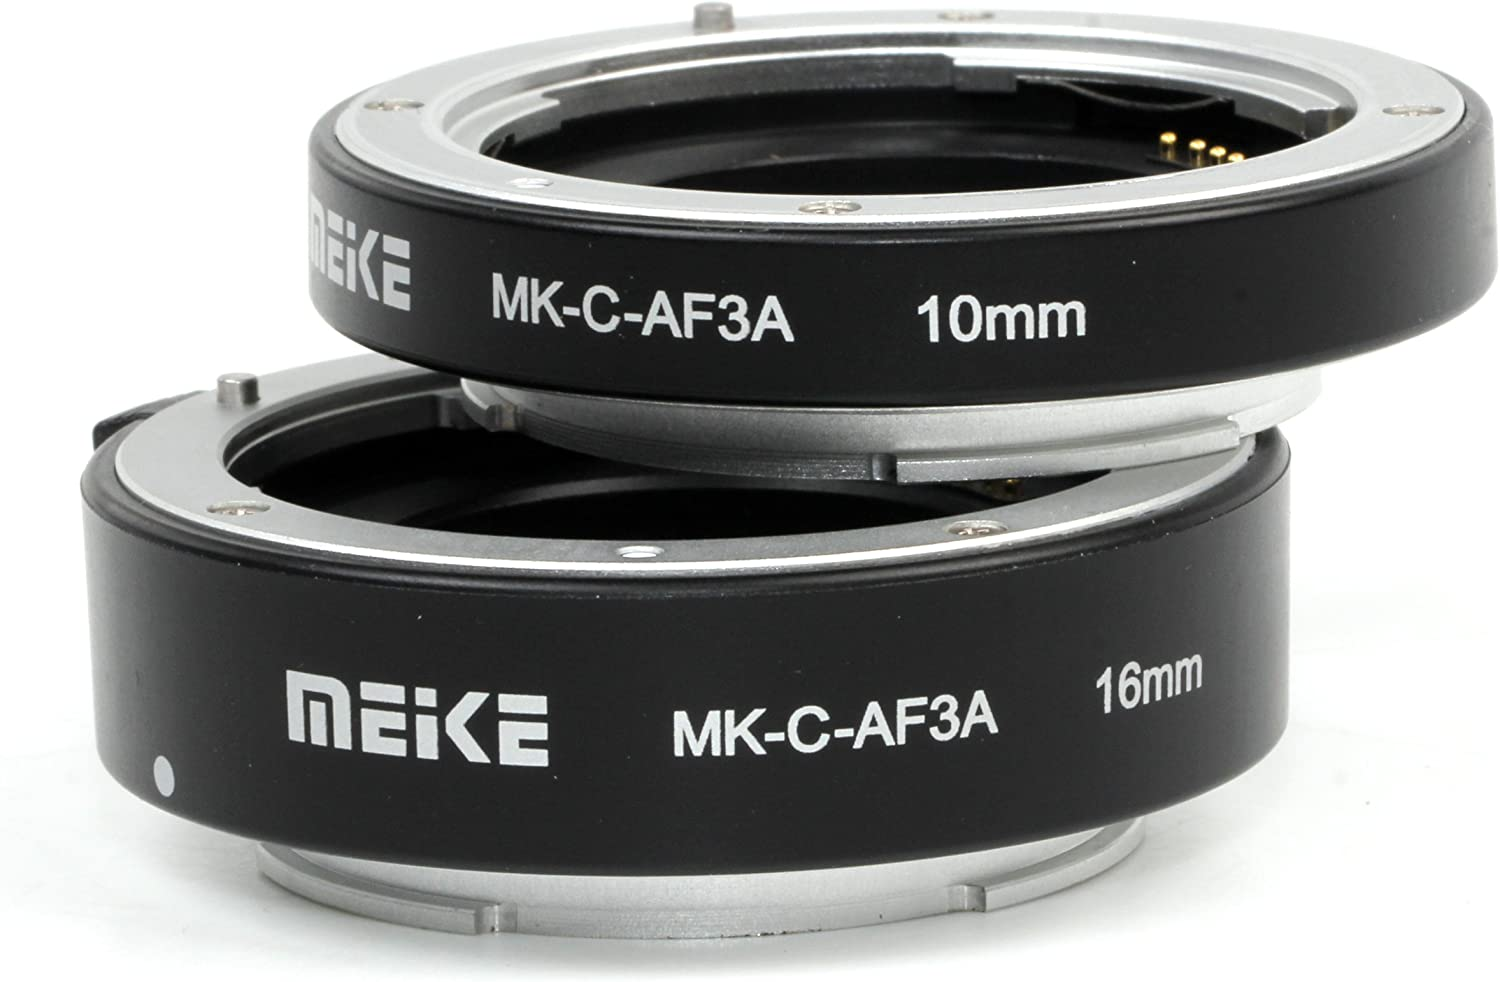 Skyblue Automatic AF Conrfirm Auto Focus Macro Electronic Extension Tube Set for Canon EOS M Mirroless Camera